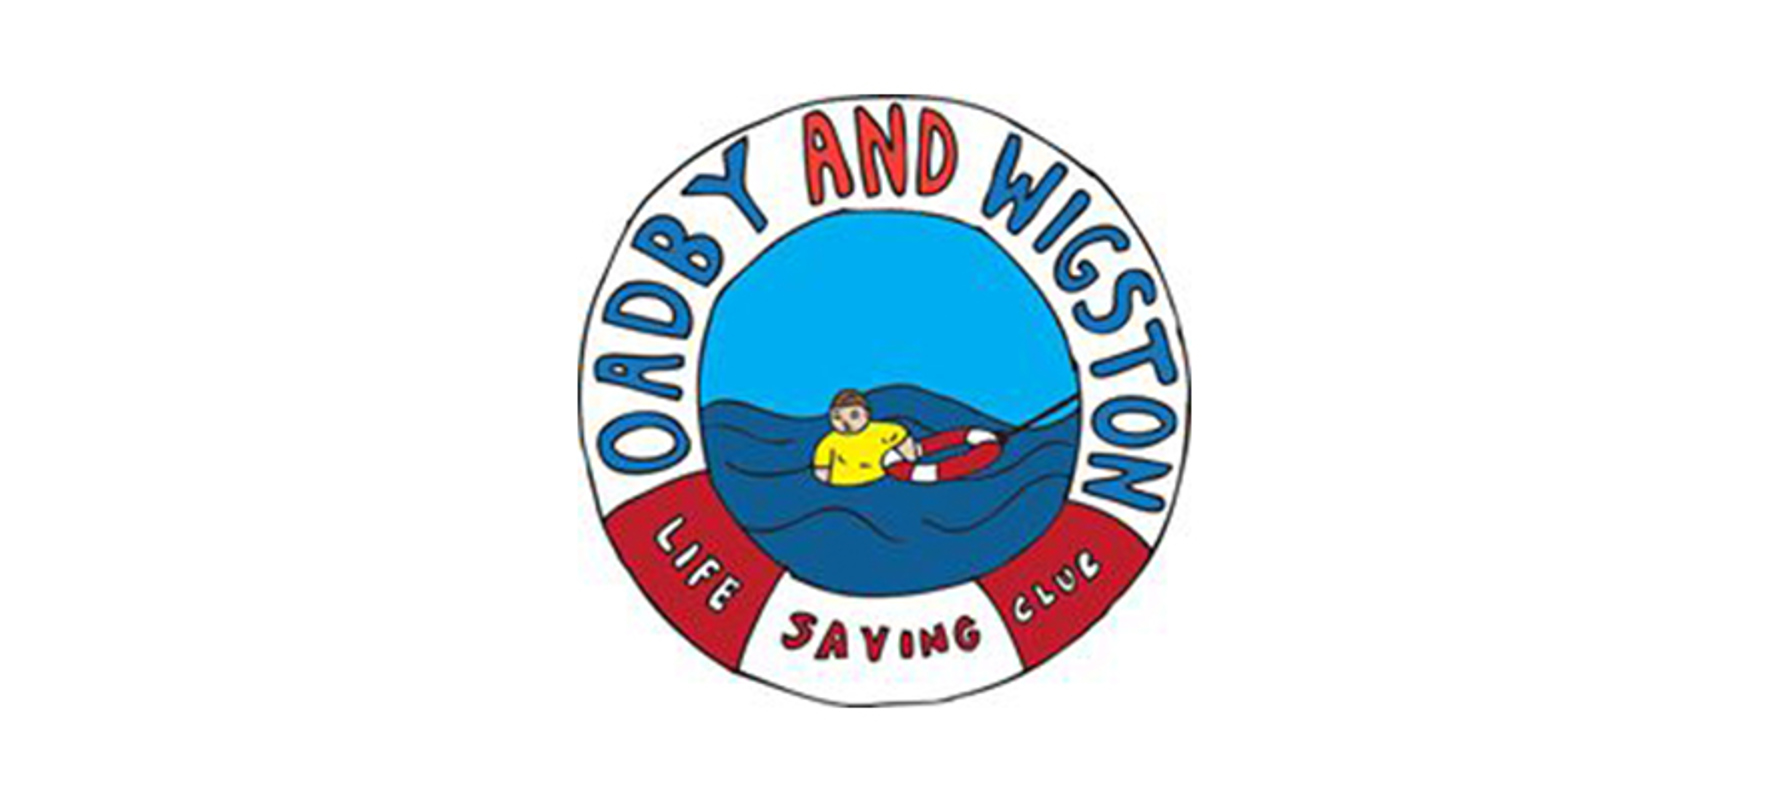 Oadby and Wigston Lifesaving Club host Open Day